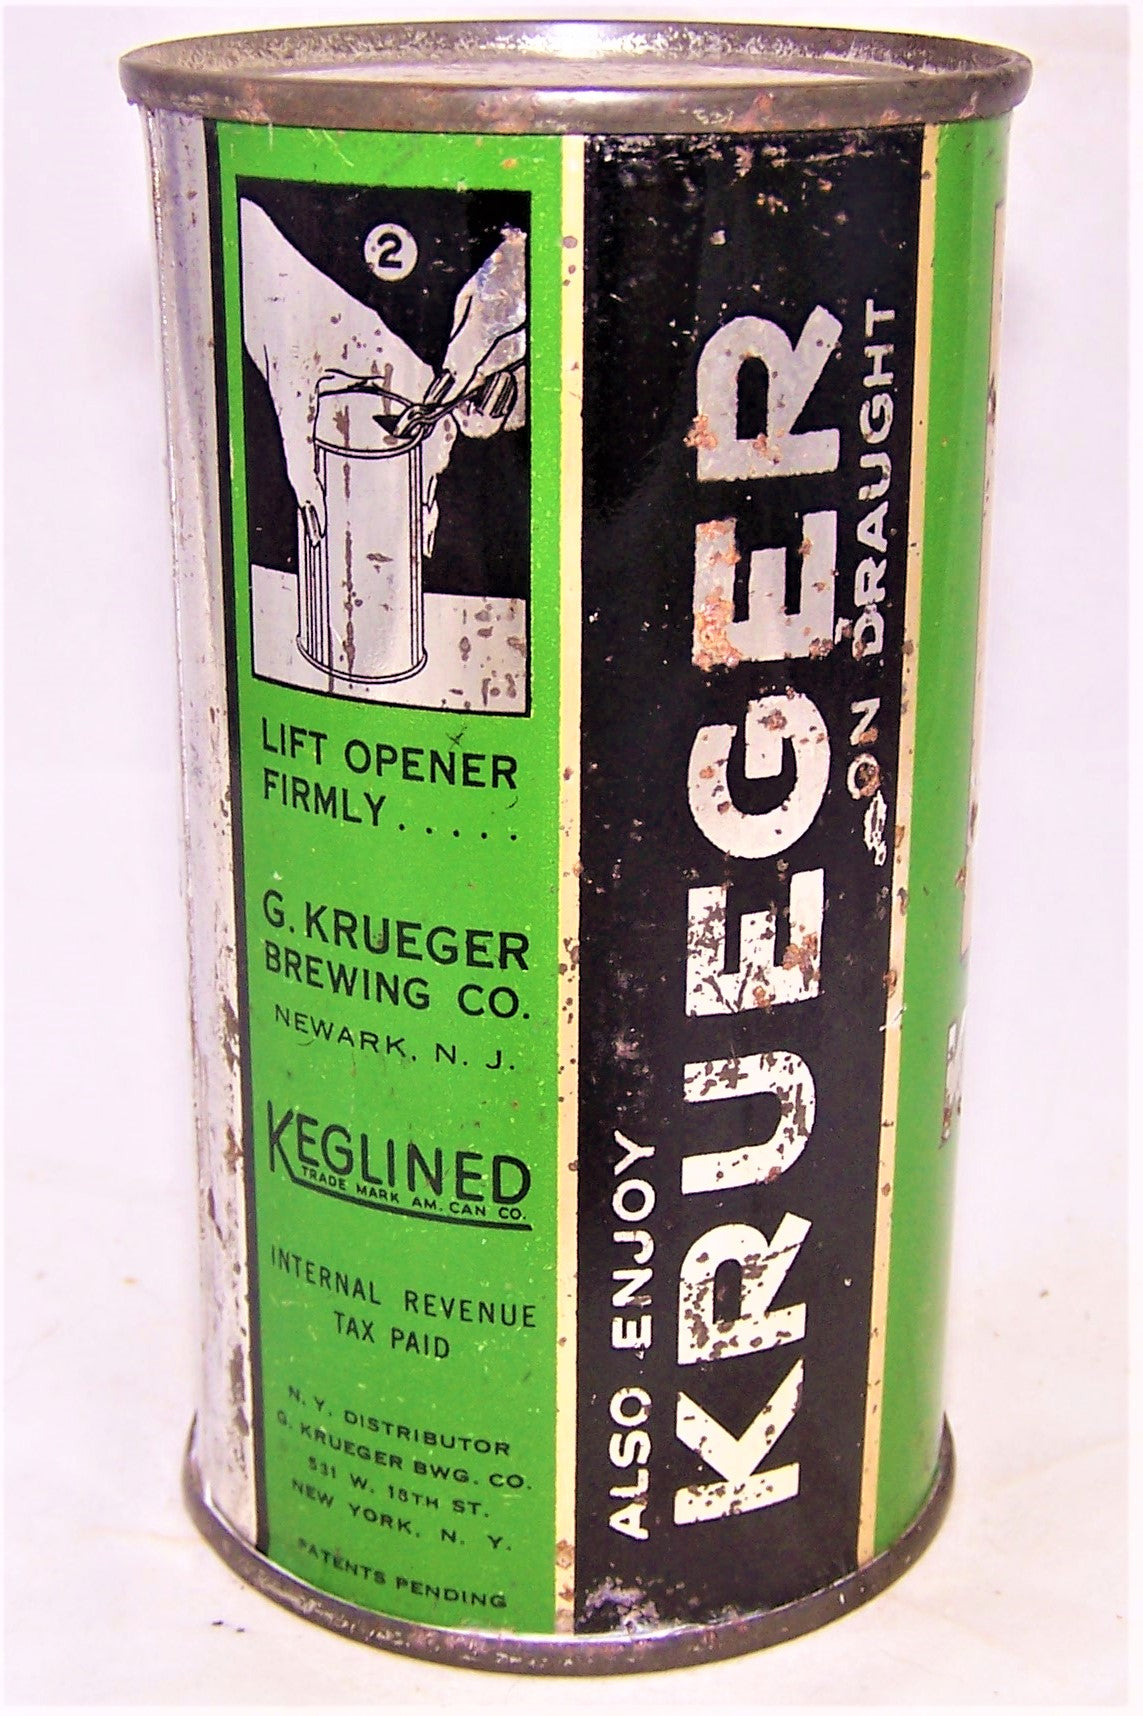 Krueger Cream Ale, Lilek page # 462 and Like USBC 89-27, Grade 1-/2+